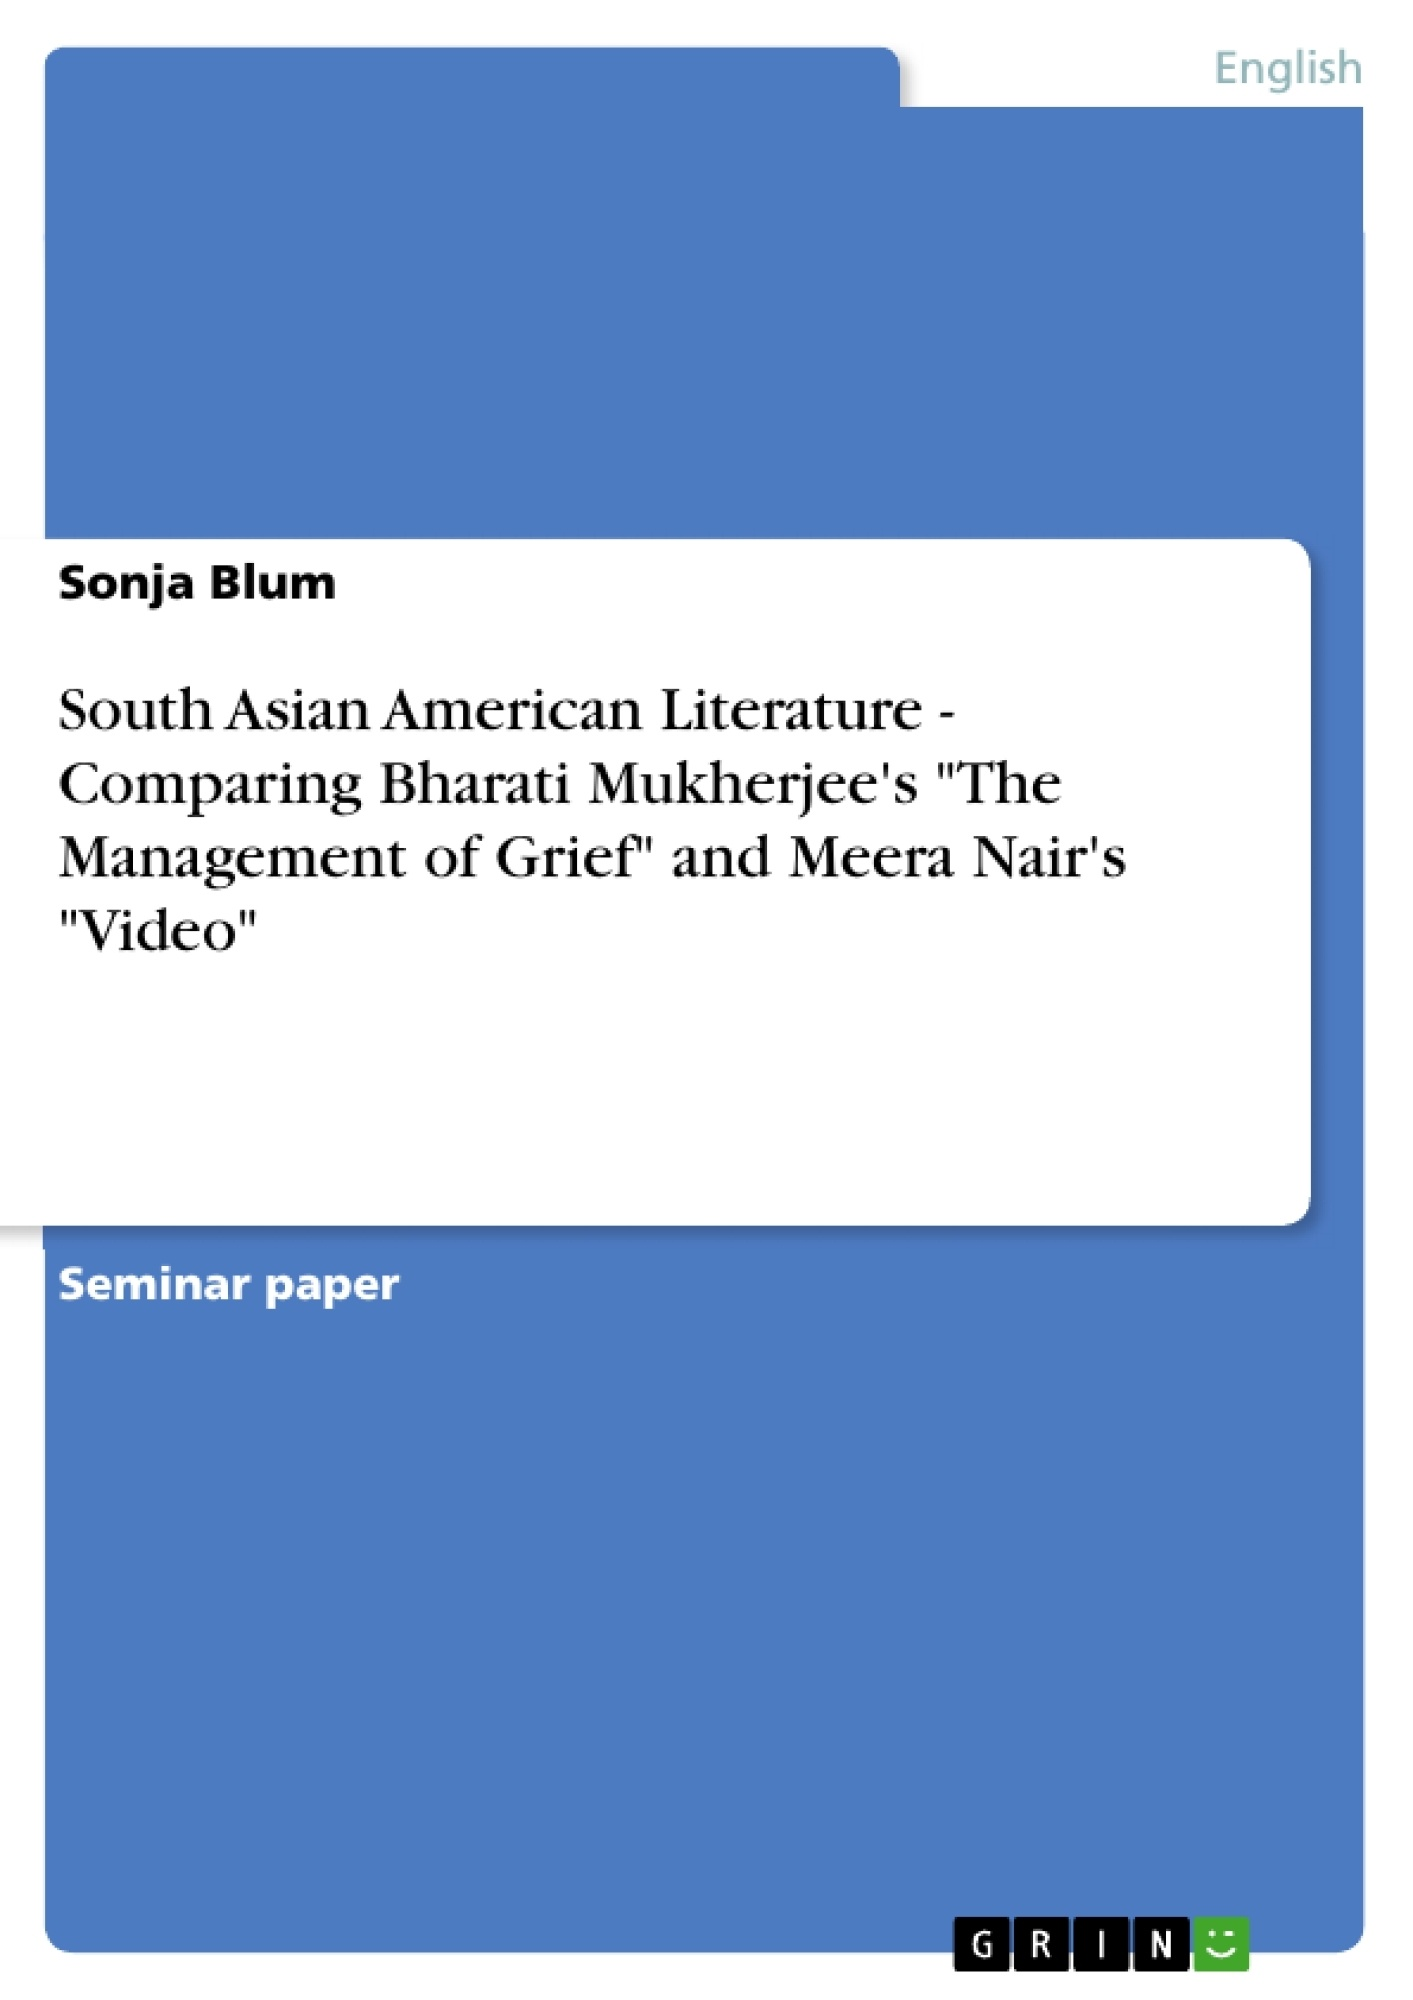 south asian american literature comparing bharati mukherjee s south asian american literature comparing bharati mukherjee s publish your master s thesis bachelor s thesis essay or term paper